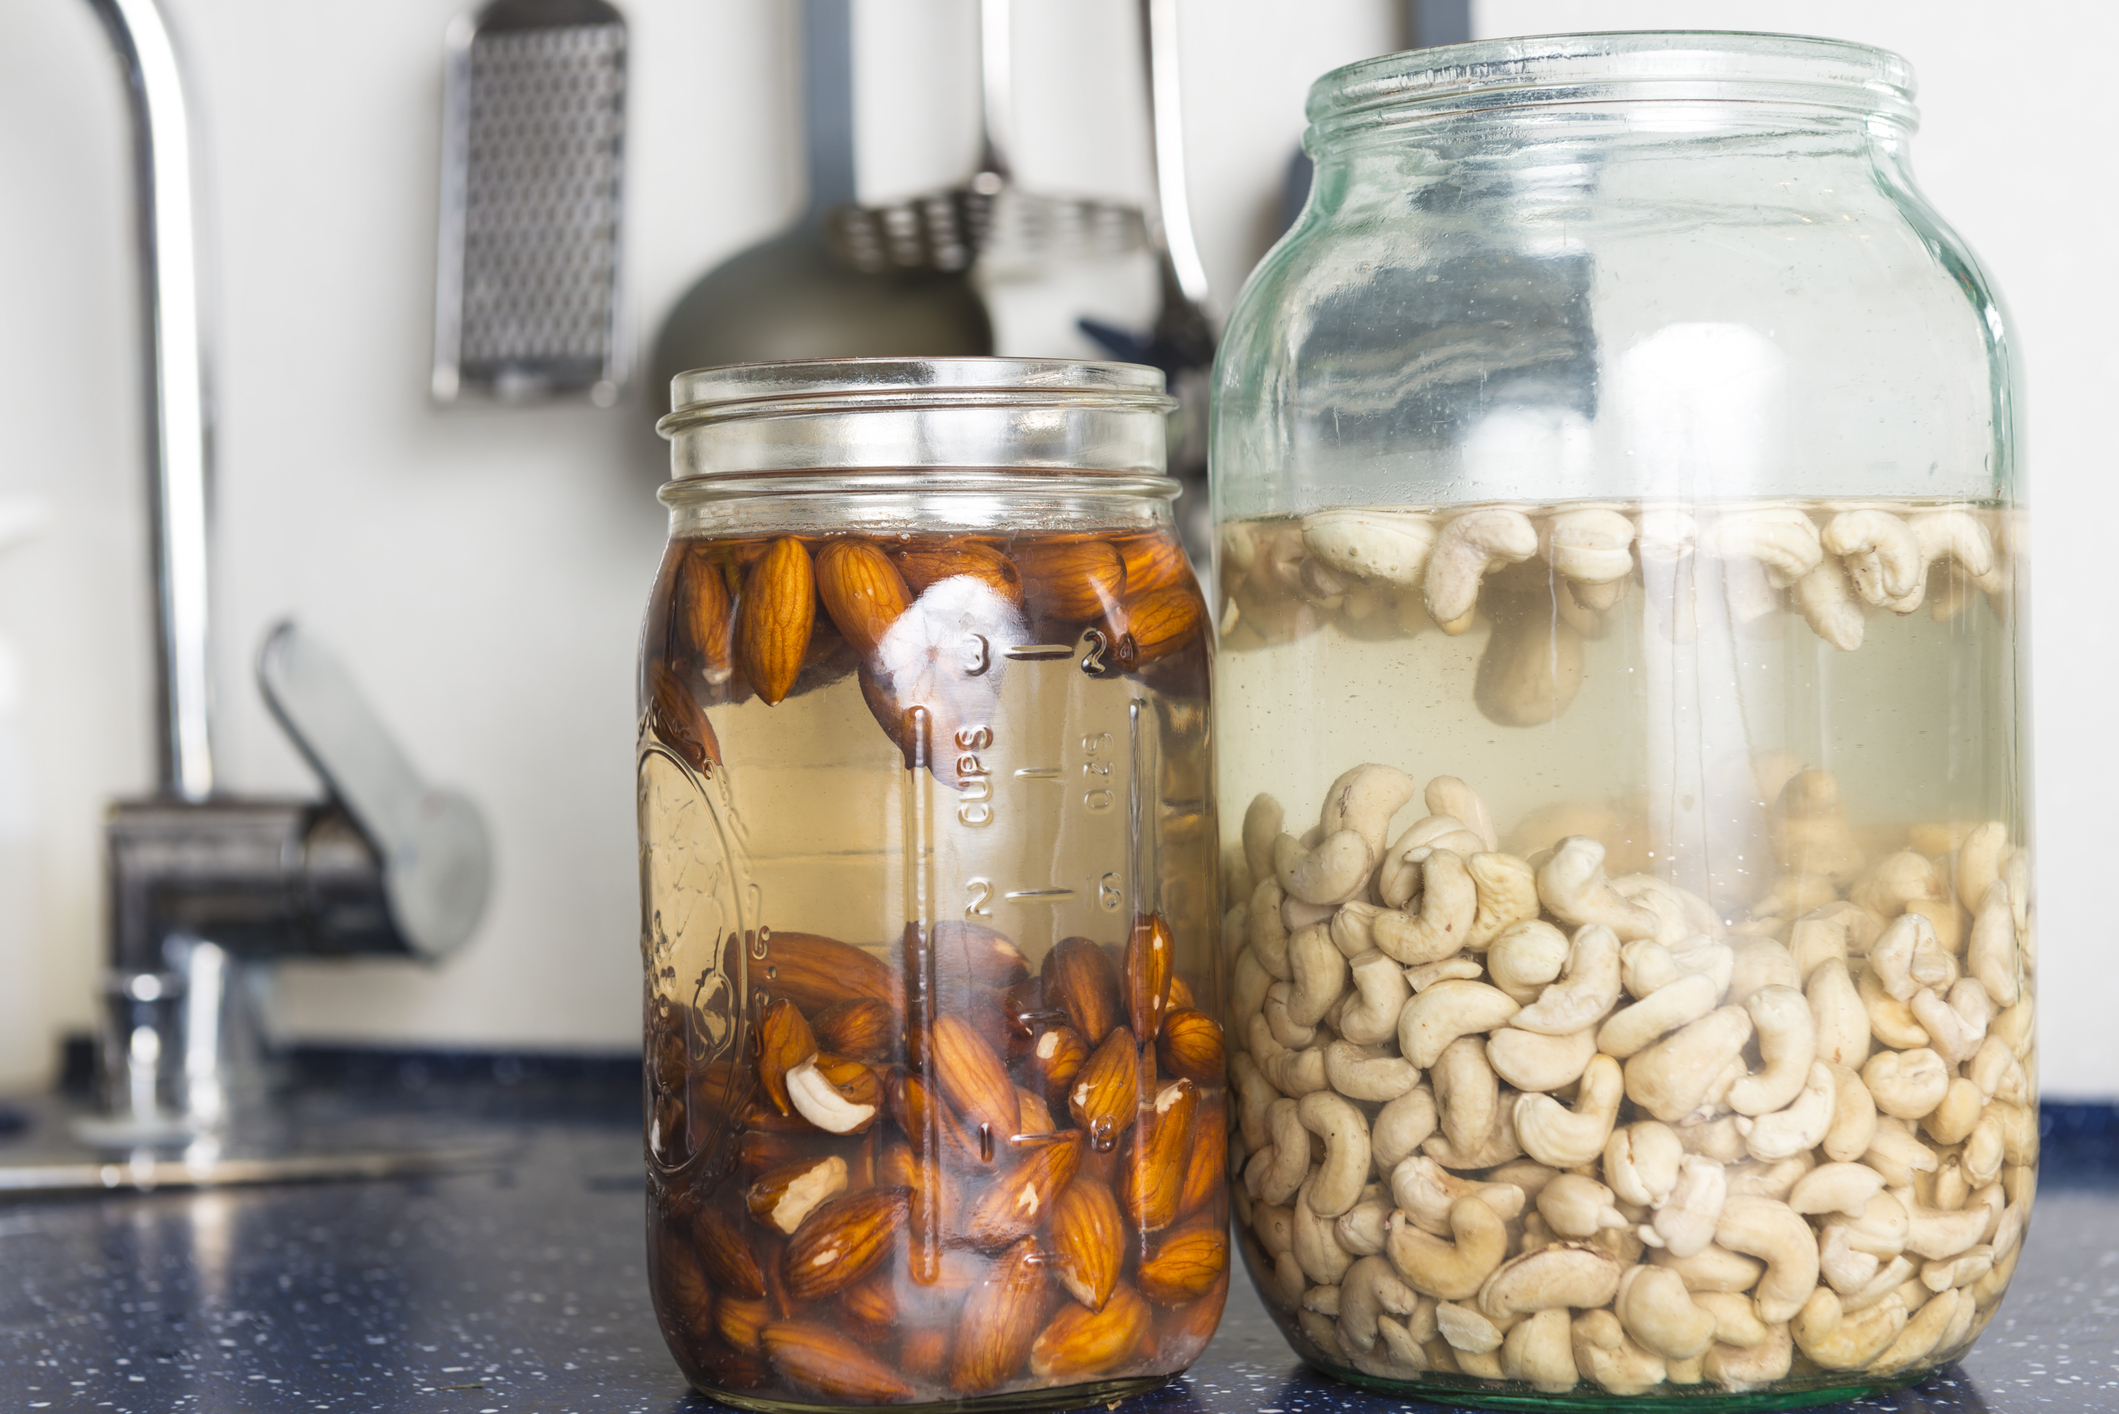 Soaked almonds and cashews in large glass in domestic kitchen. They are used to prepaire raw vegan cheese and other raw recepies.